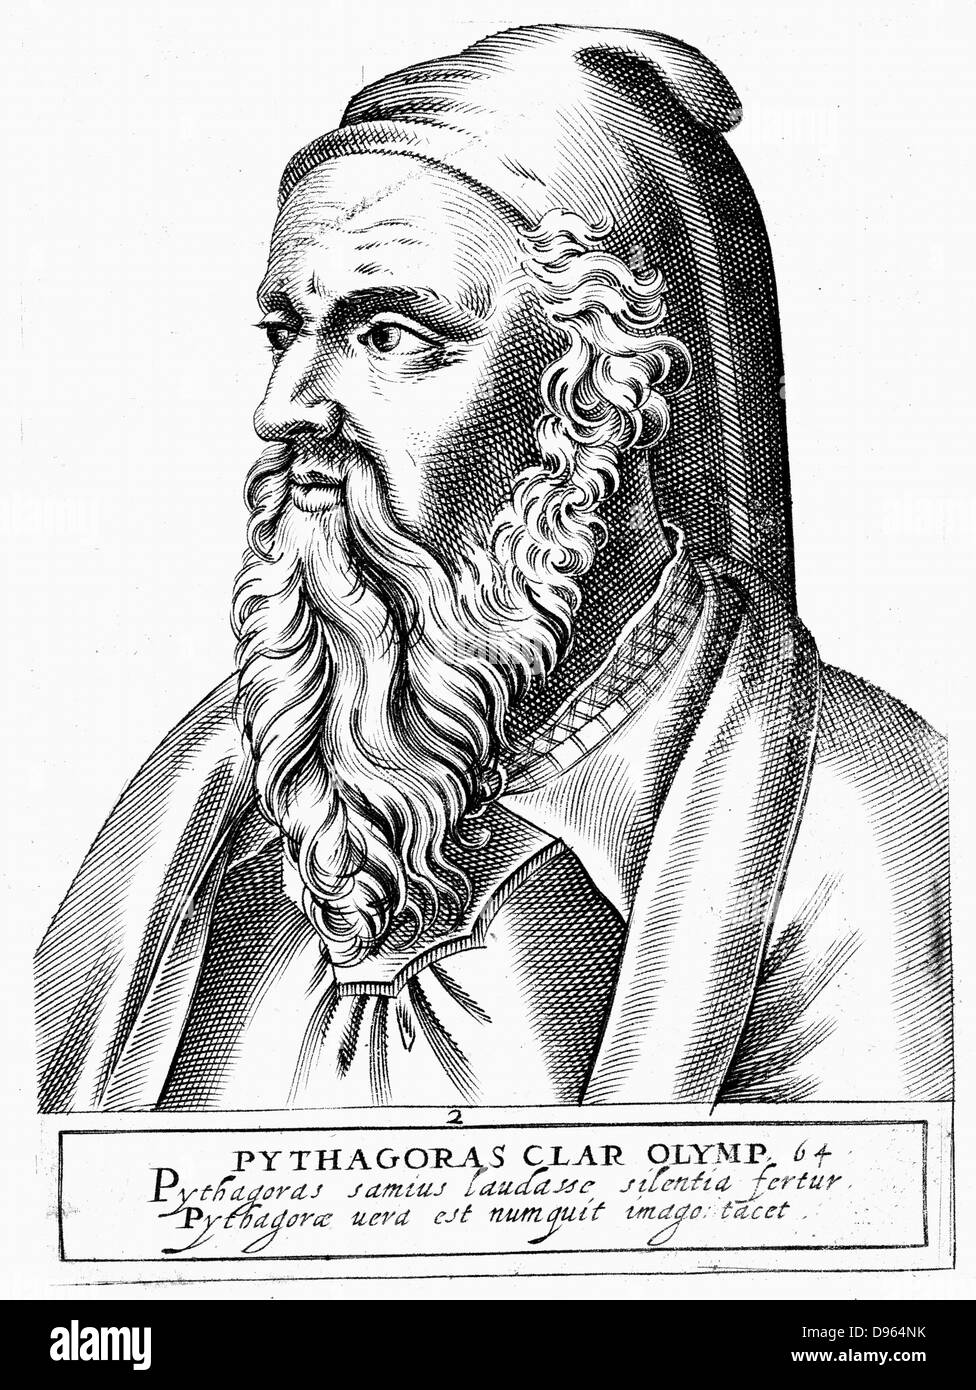 Pythagoras (c560-c480 BC) Ancient Greek philosopher and scientist. Engraving. - Stock Image